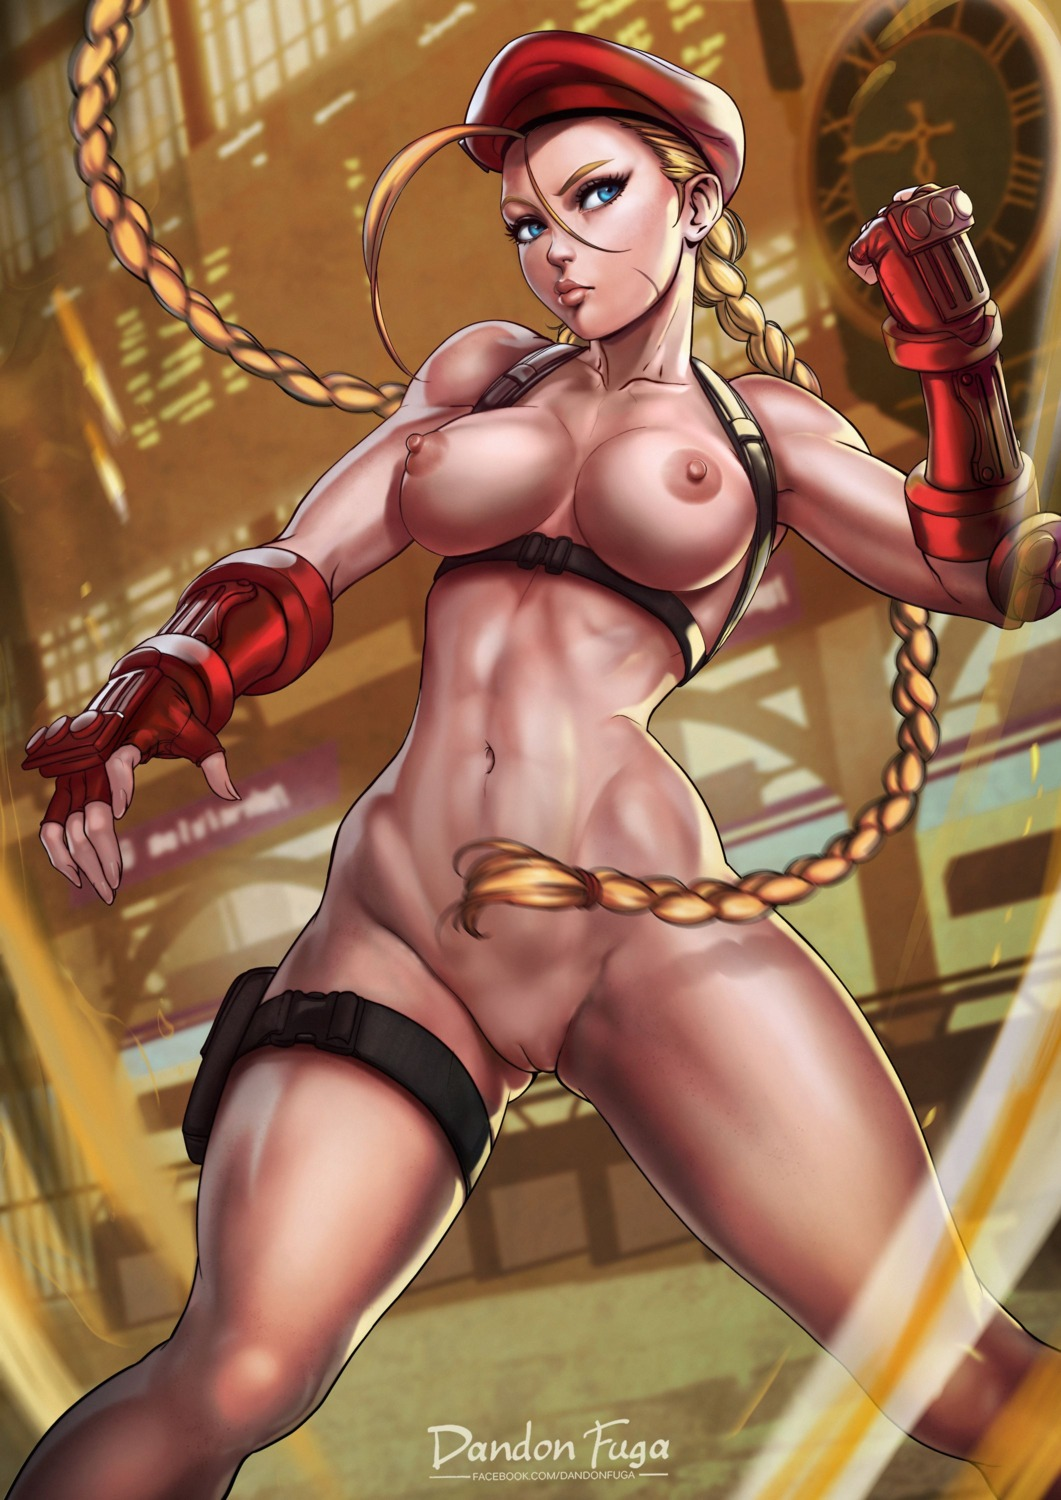 cammy_white dandon_fuga naked nipples pussy street_fighter street_fighter_v uncensored